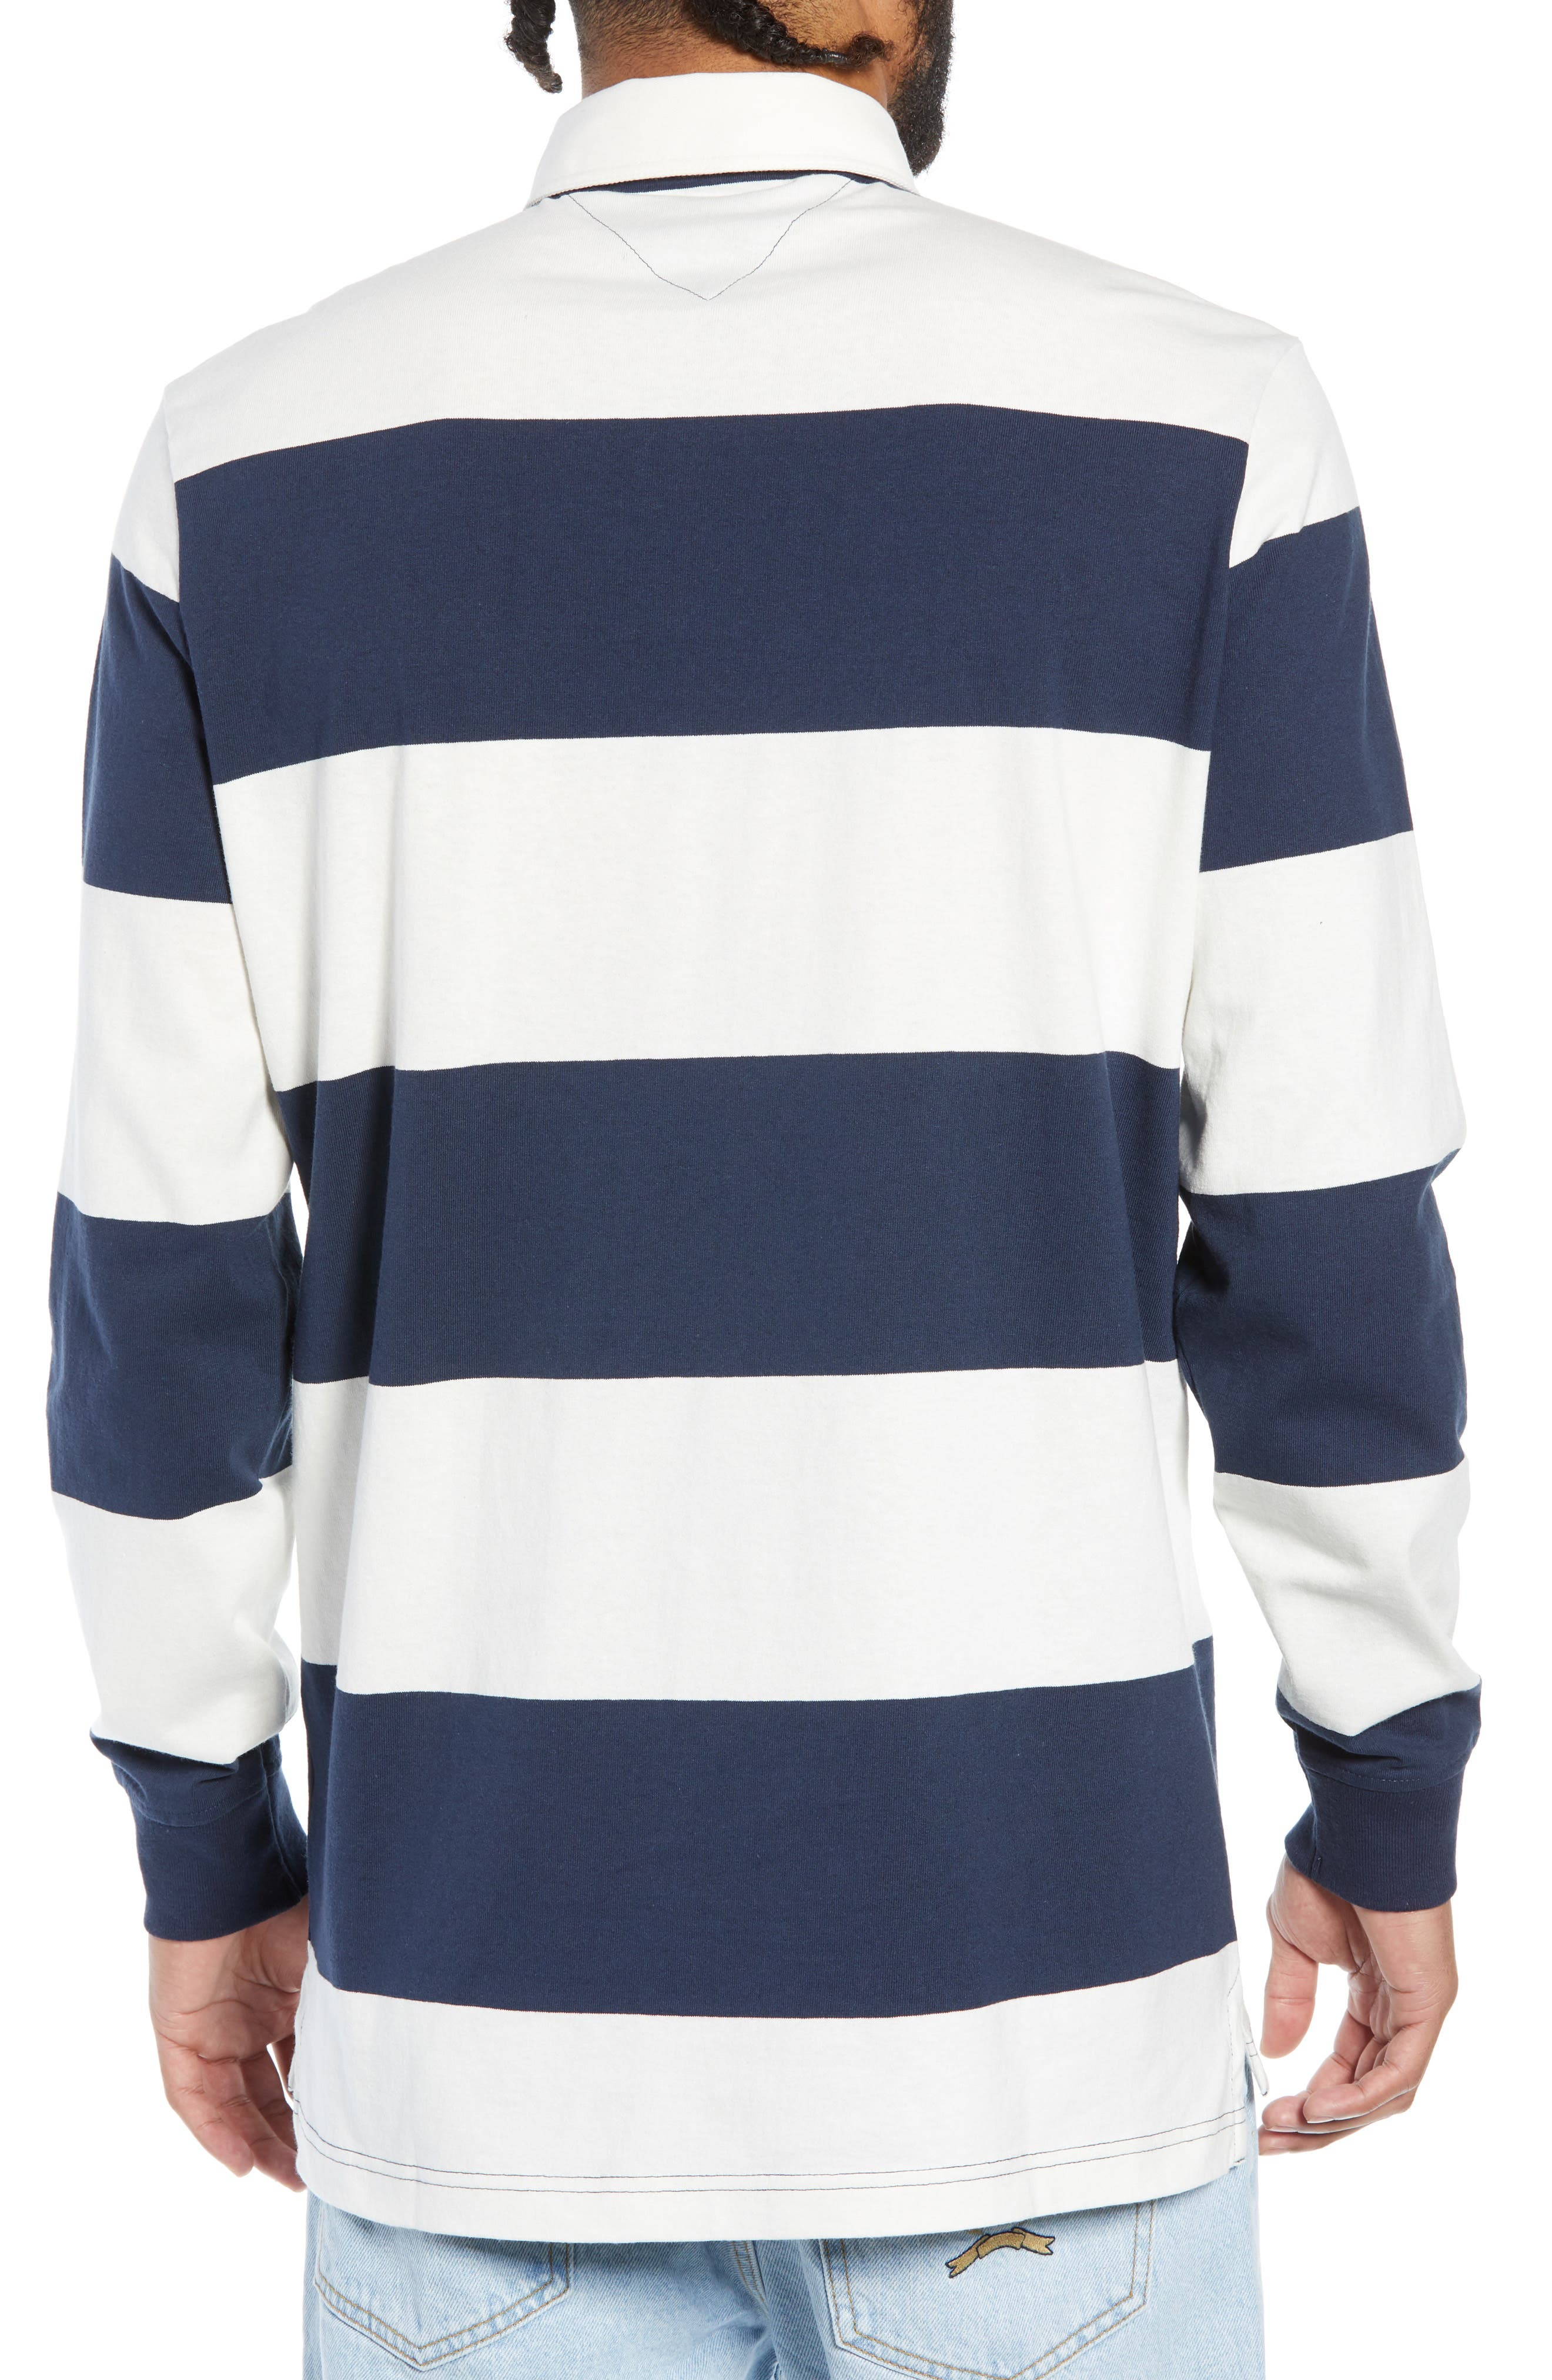 TJM Tommy Classics Rugby Shirt,                             Alternate thumbnail 2, color,                             100